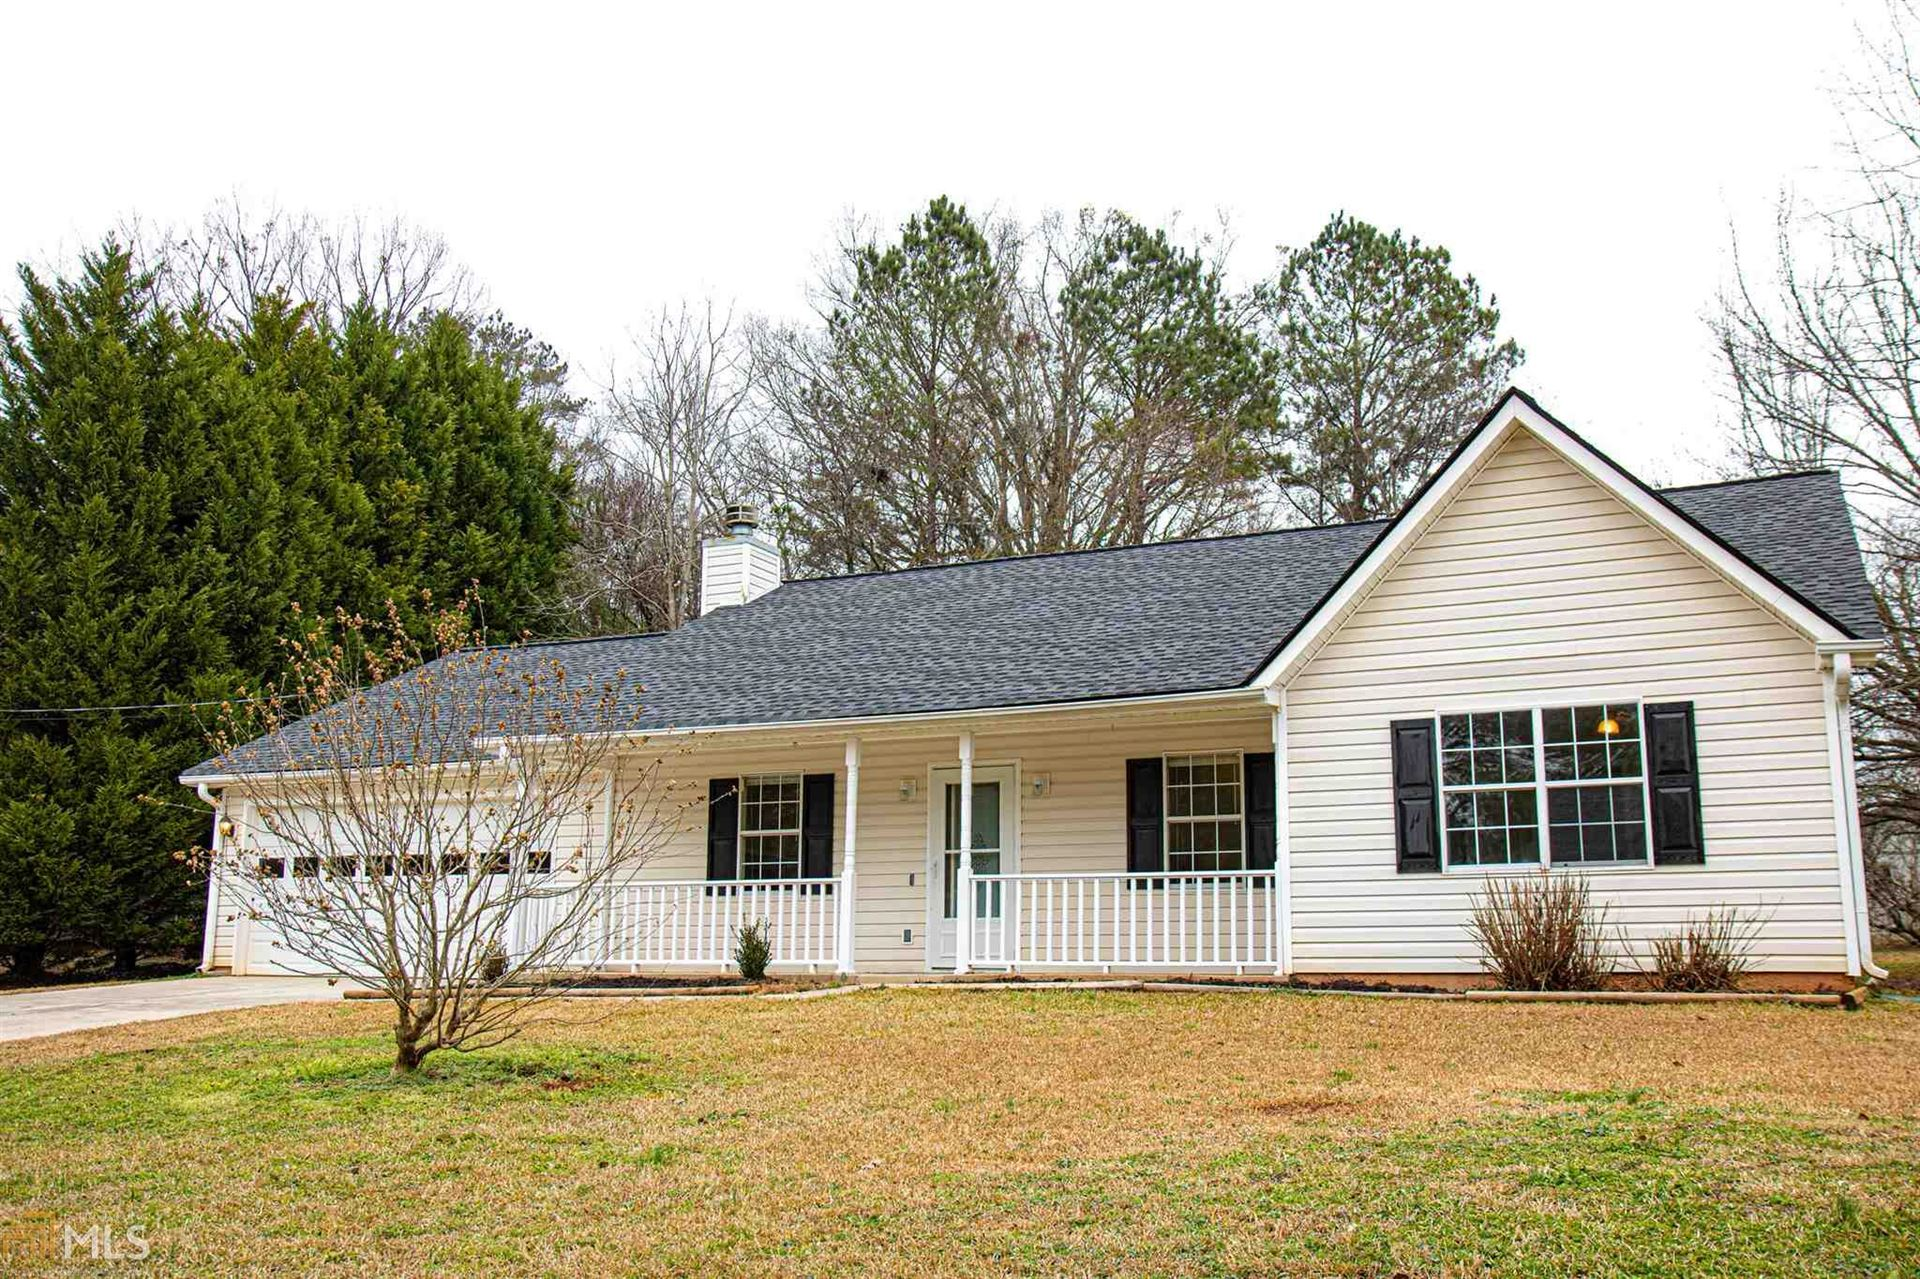 86 Mallie Ct, Hampton, GA 30228 - MLS#: 8912714